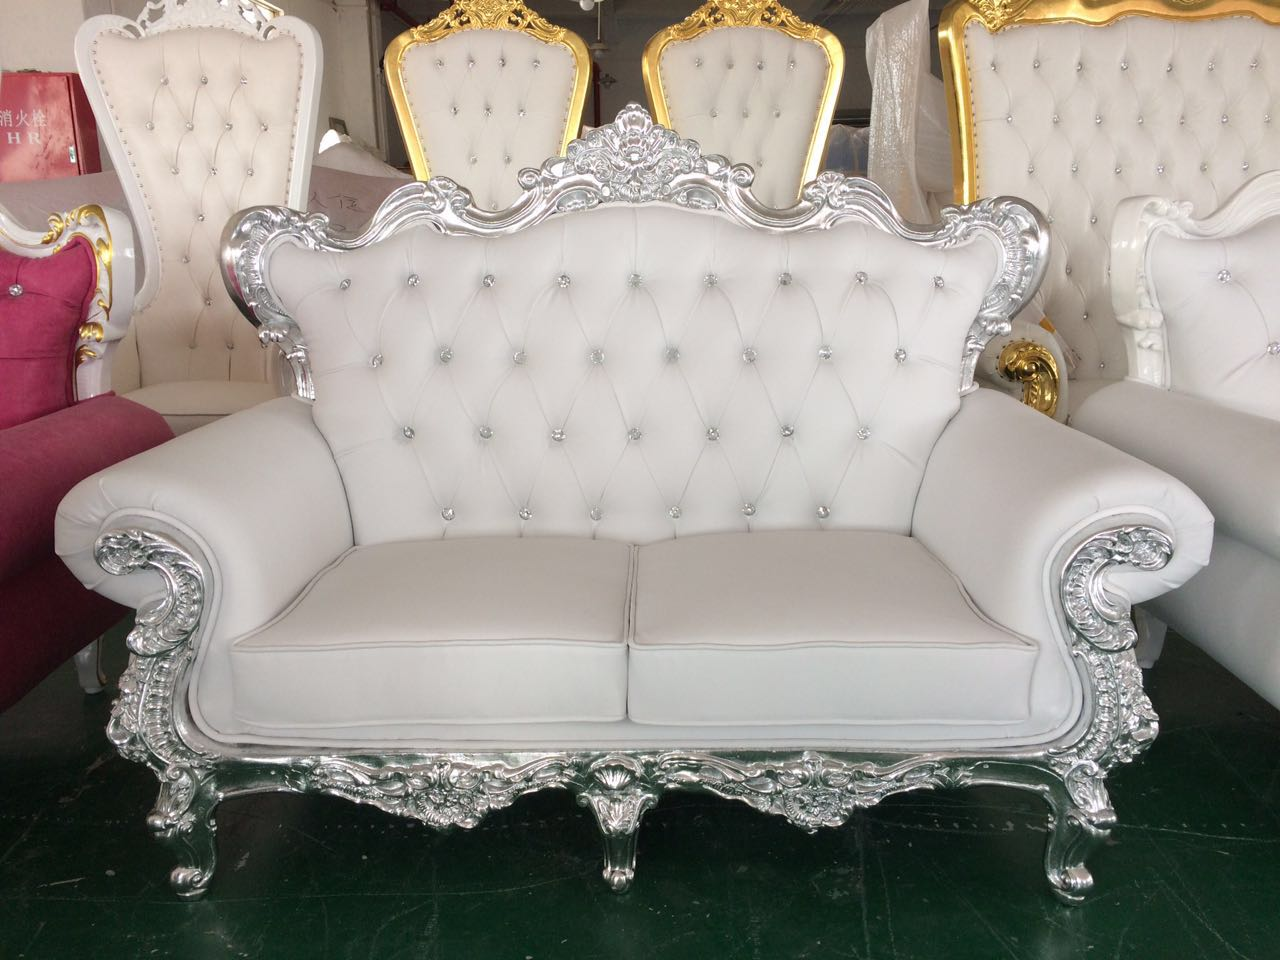 Well-designed Auditorium Church Seating -